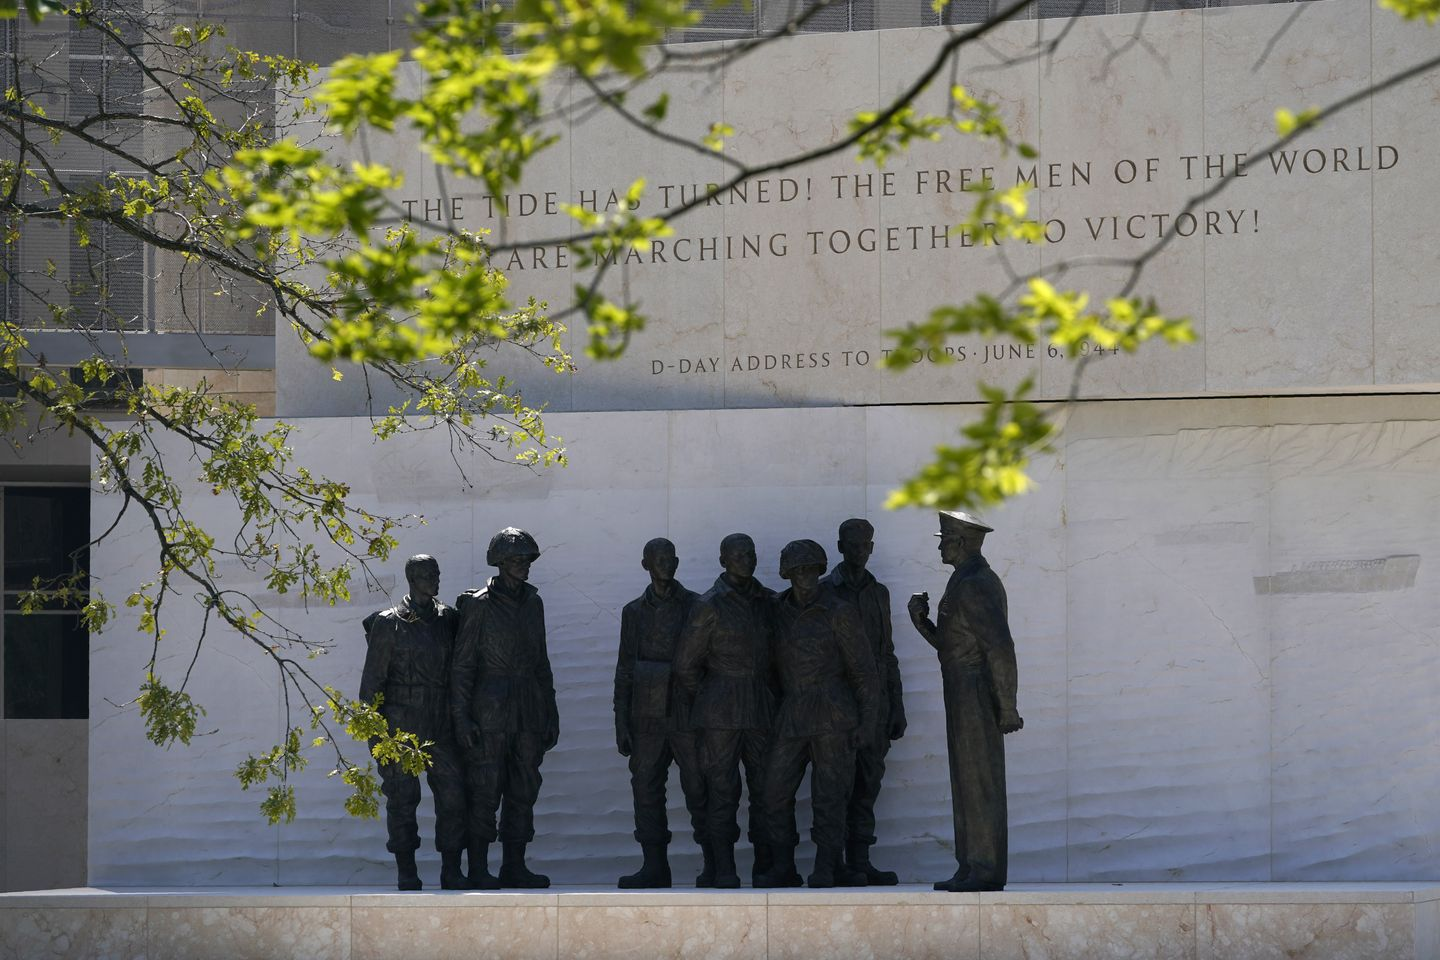 Eisenhower memorial to be dedicated in Washington D.C. after 21 years of fighting